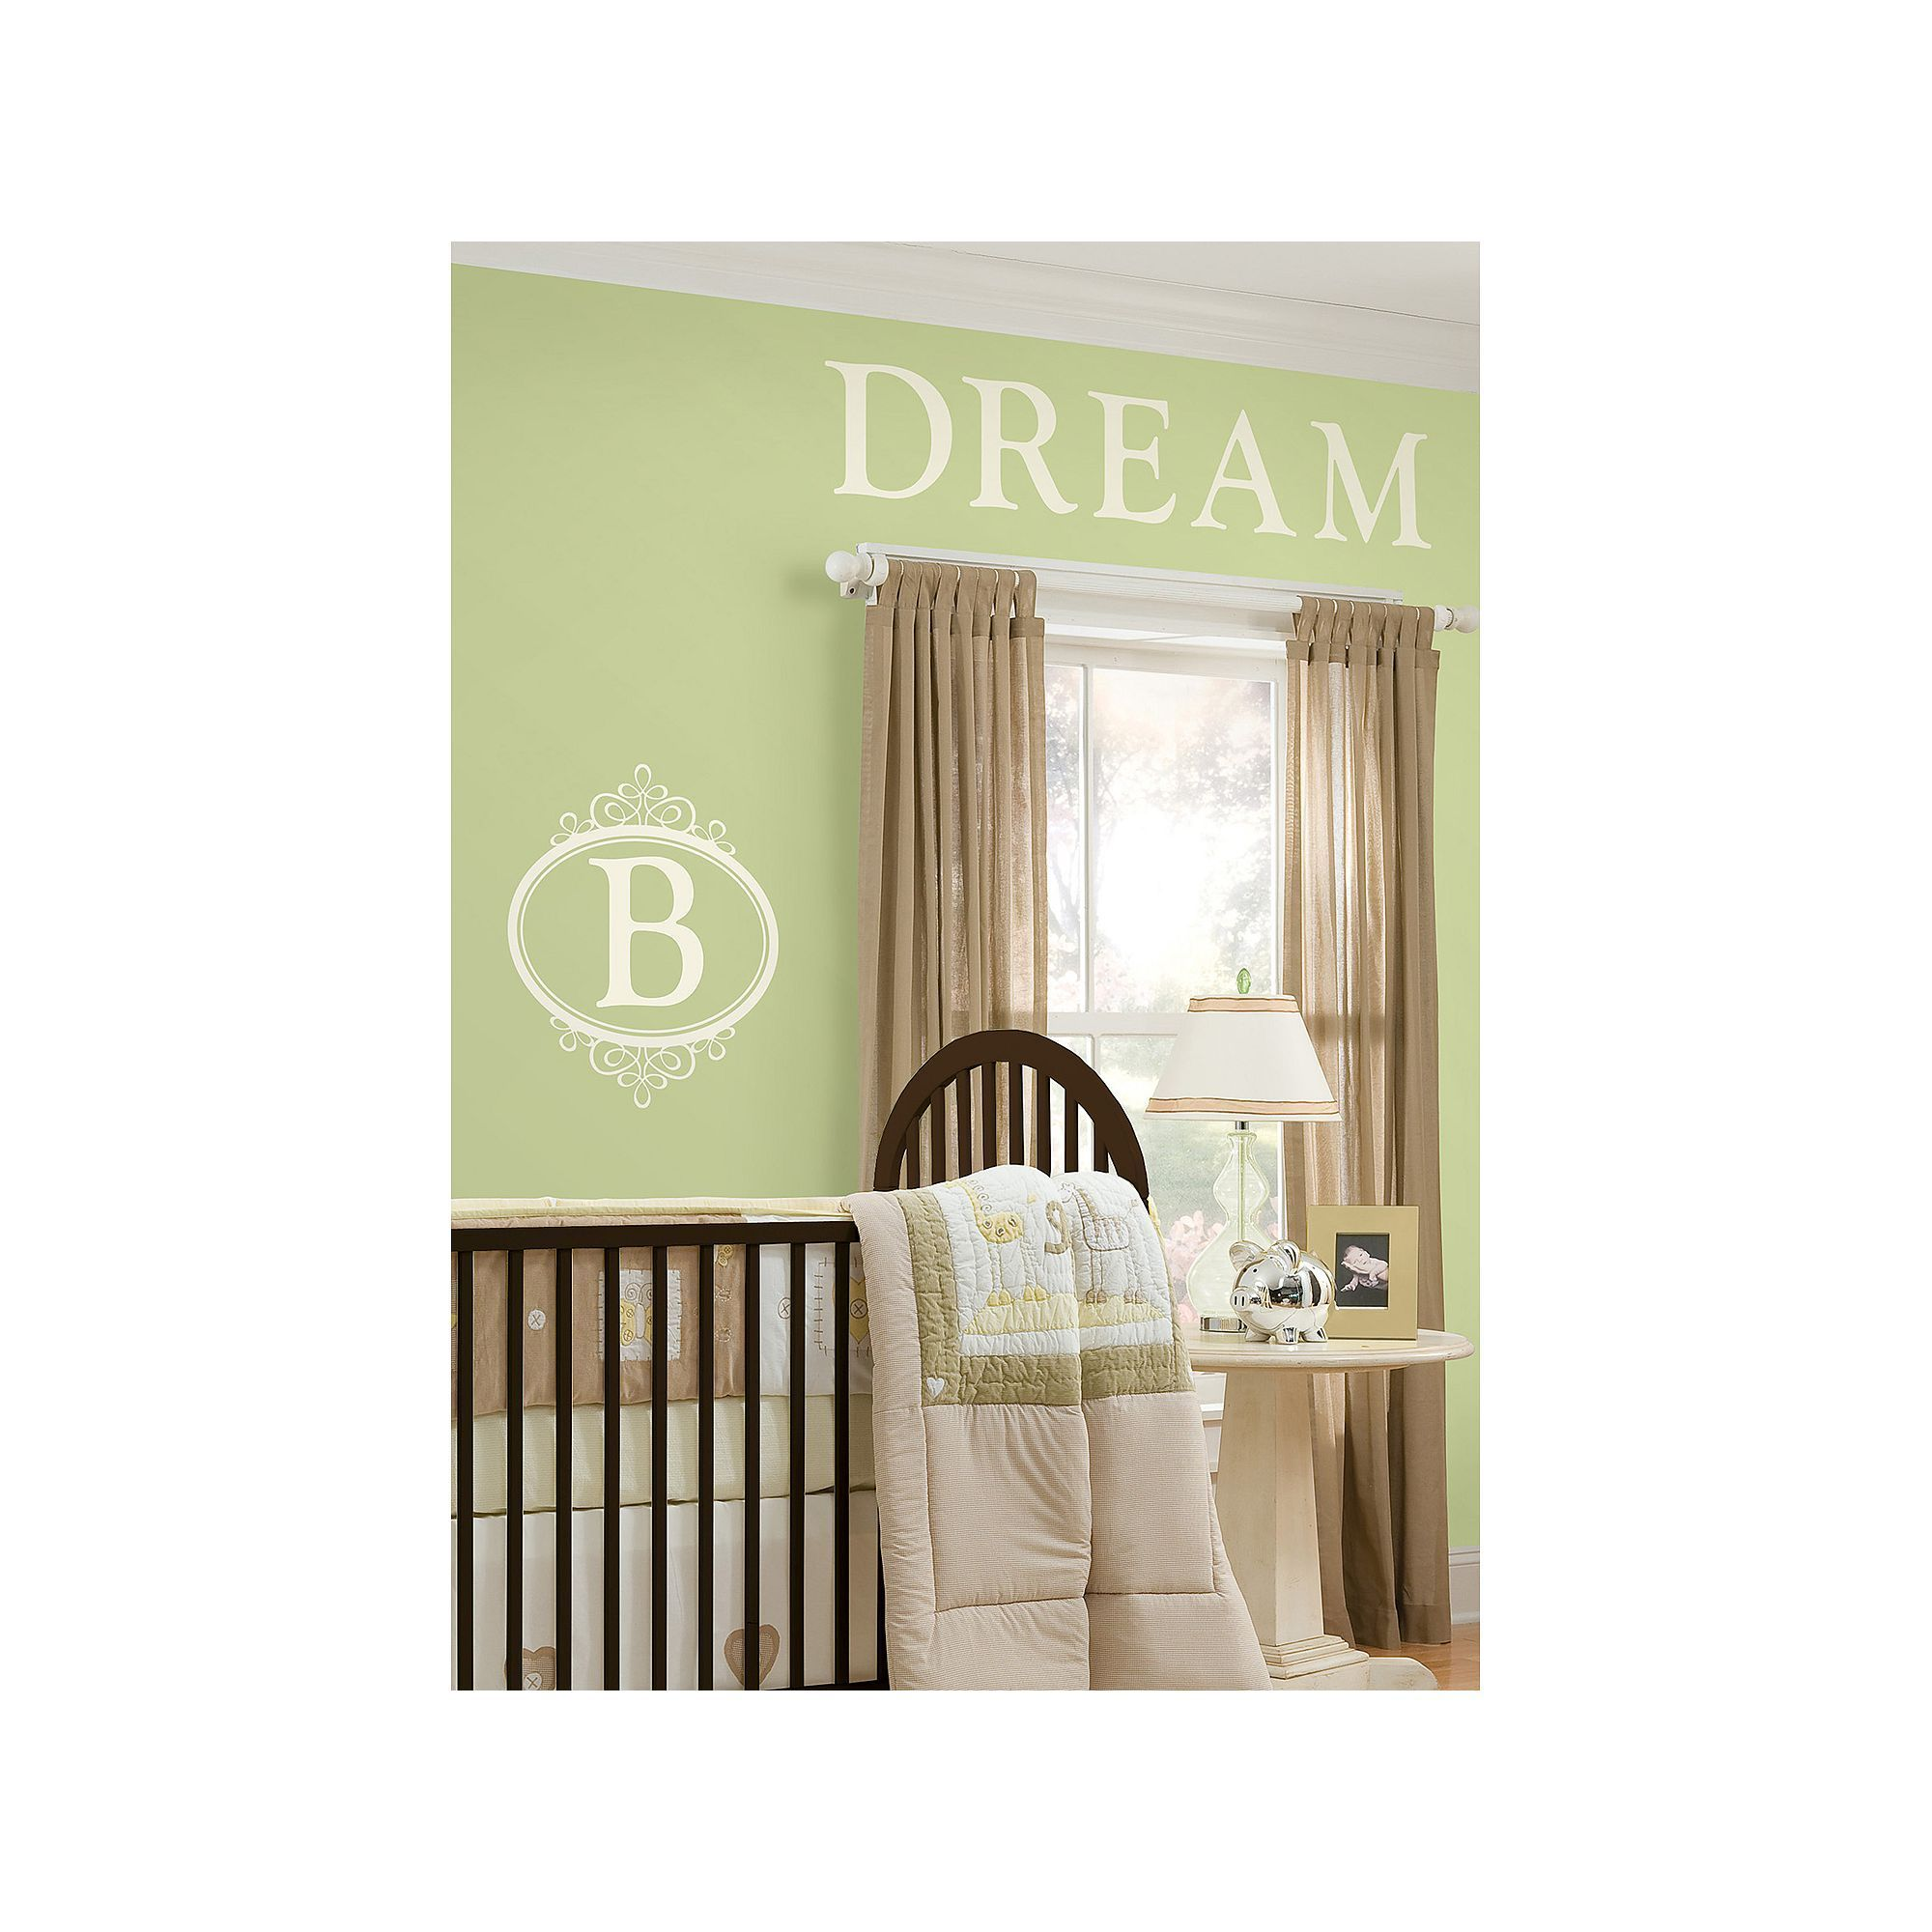 Fine Monogram Wall Art Pictures Inspiration - The Wall Art ...